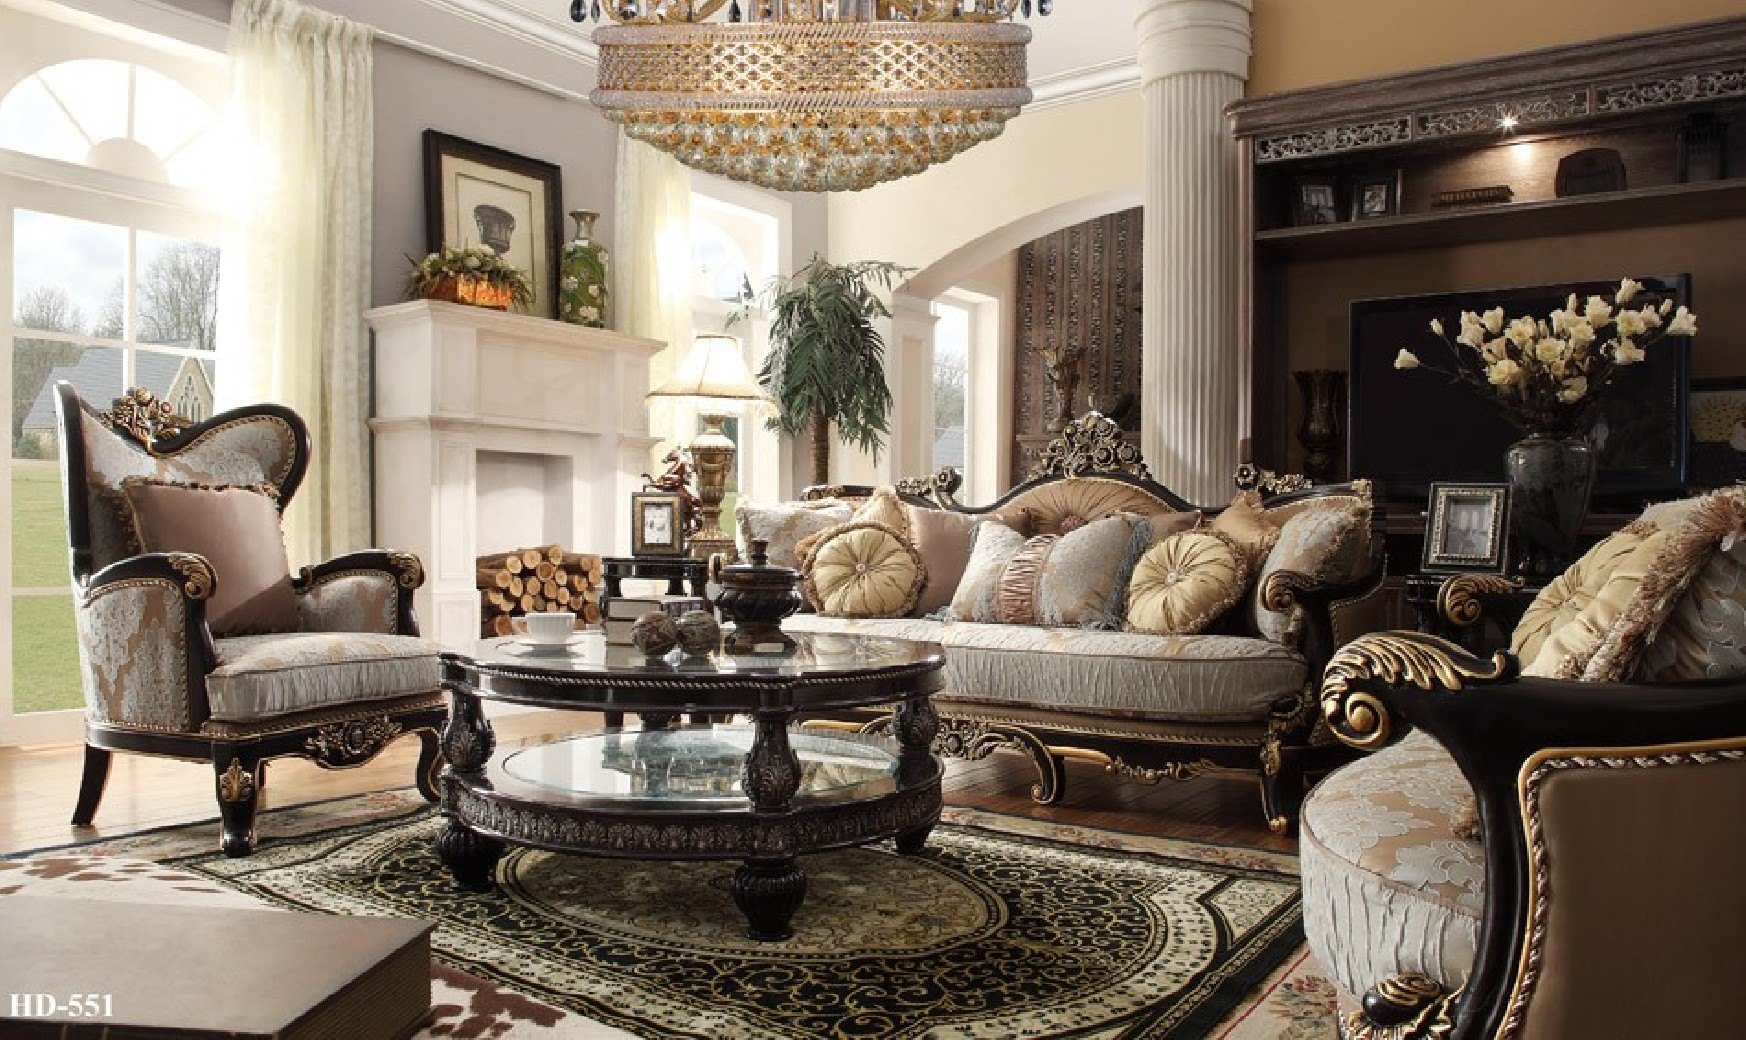 Hd 551 Homey Design Upholstery Living Room Set Victorian European Classic Design Sofa Set intended for 10 Smart Designs of How to Build Complete Living Room Sets